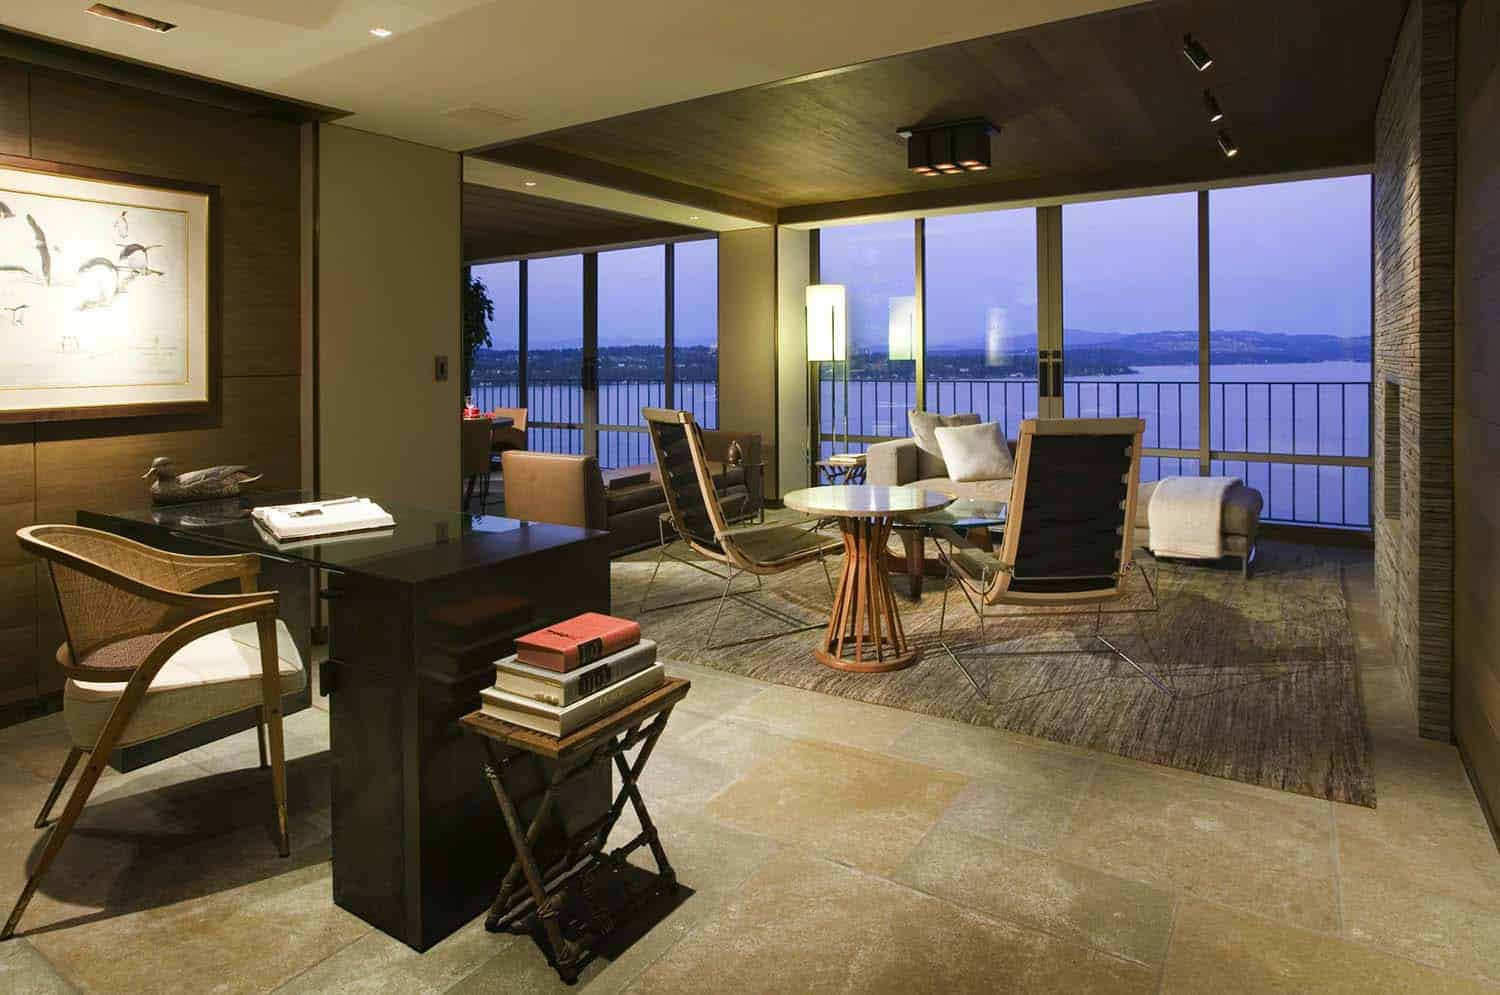 Lakefront Condo Interior-Garret Cord Werner-03-1 Kindesign